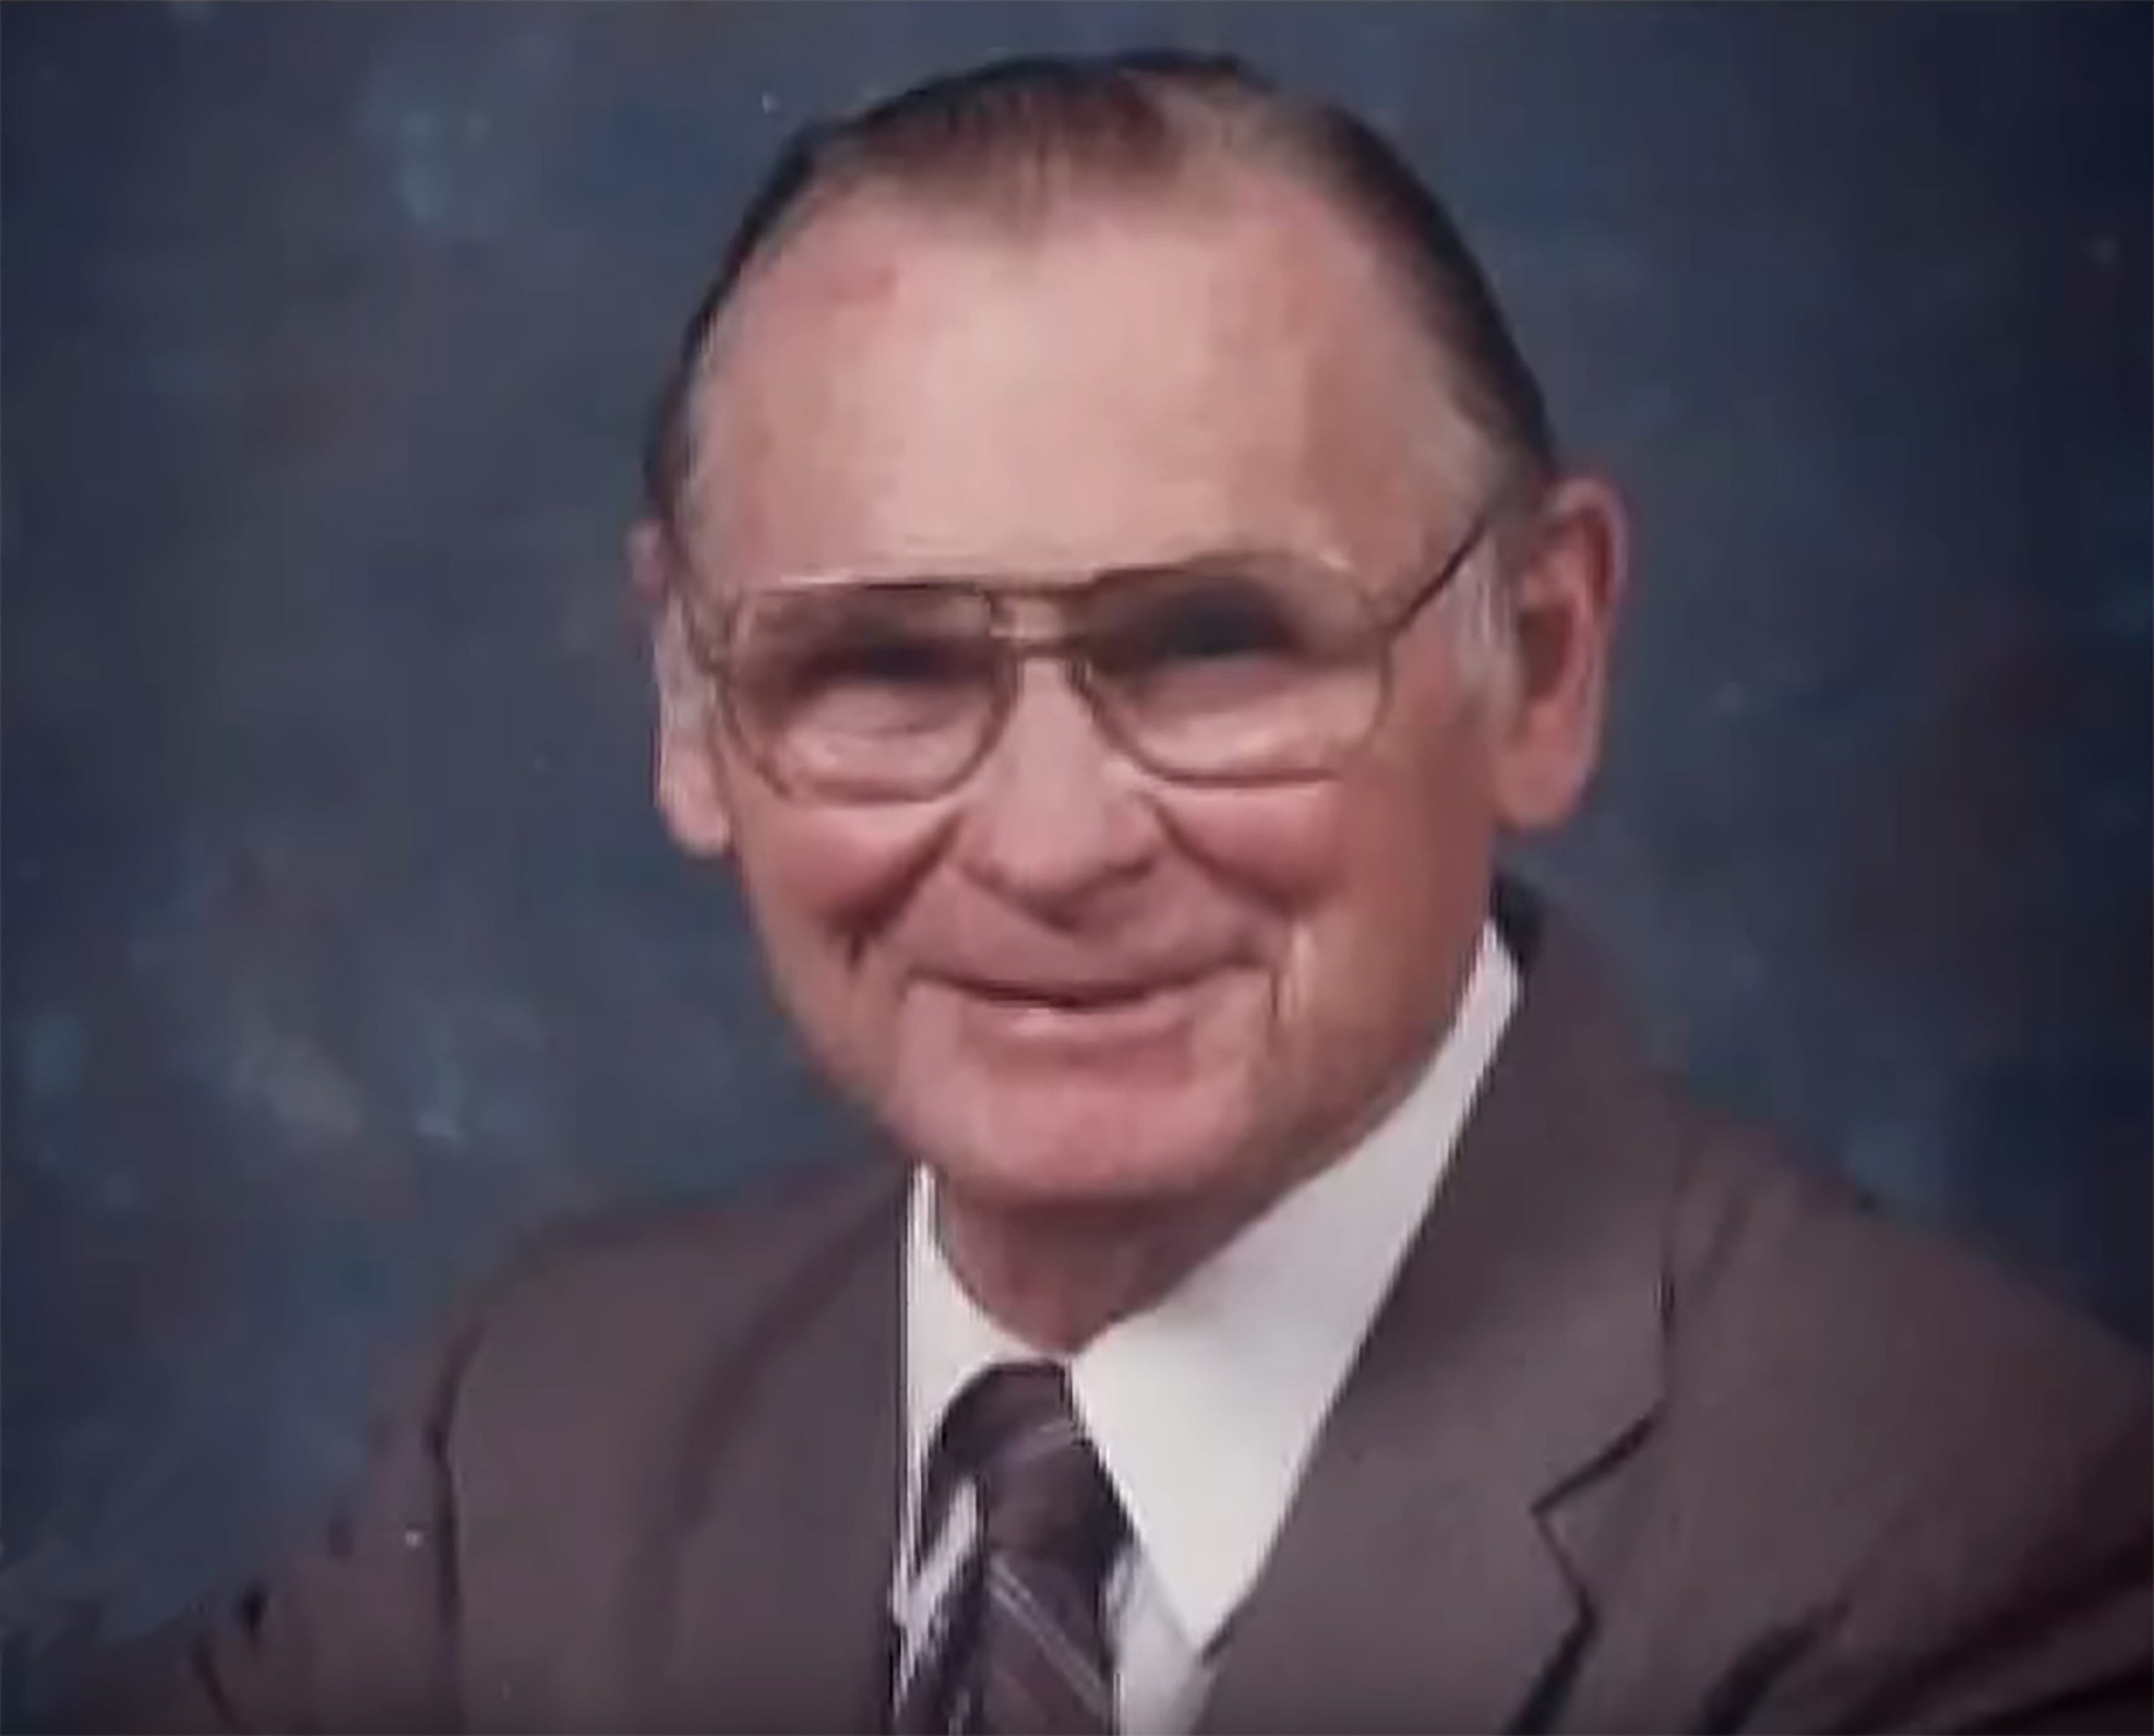 Hidden camera shows how WWII veteran died after calling for help, gasping for air